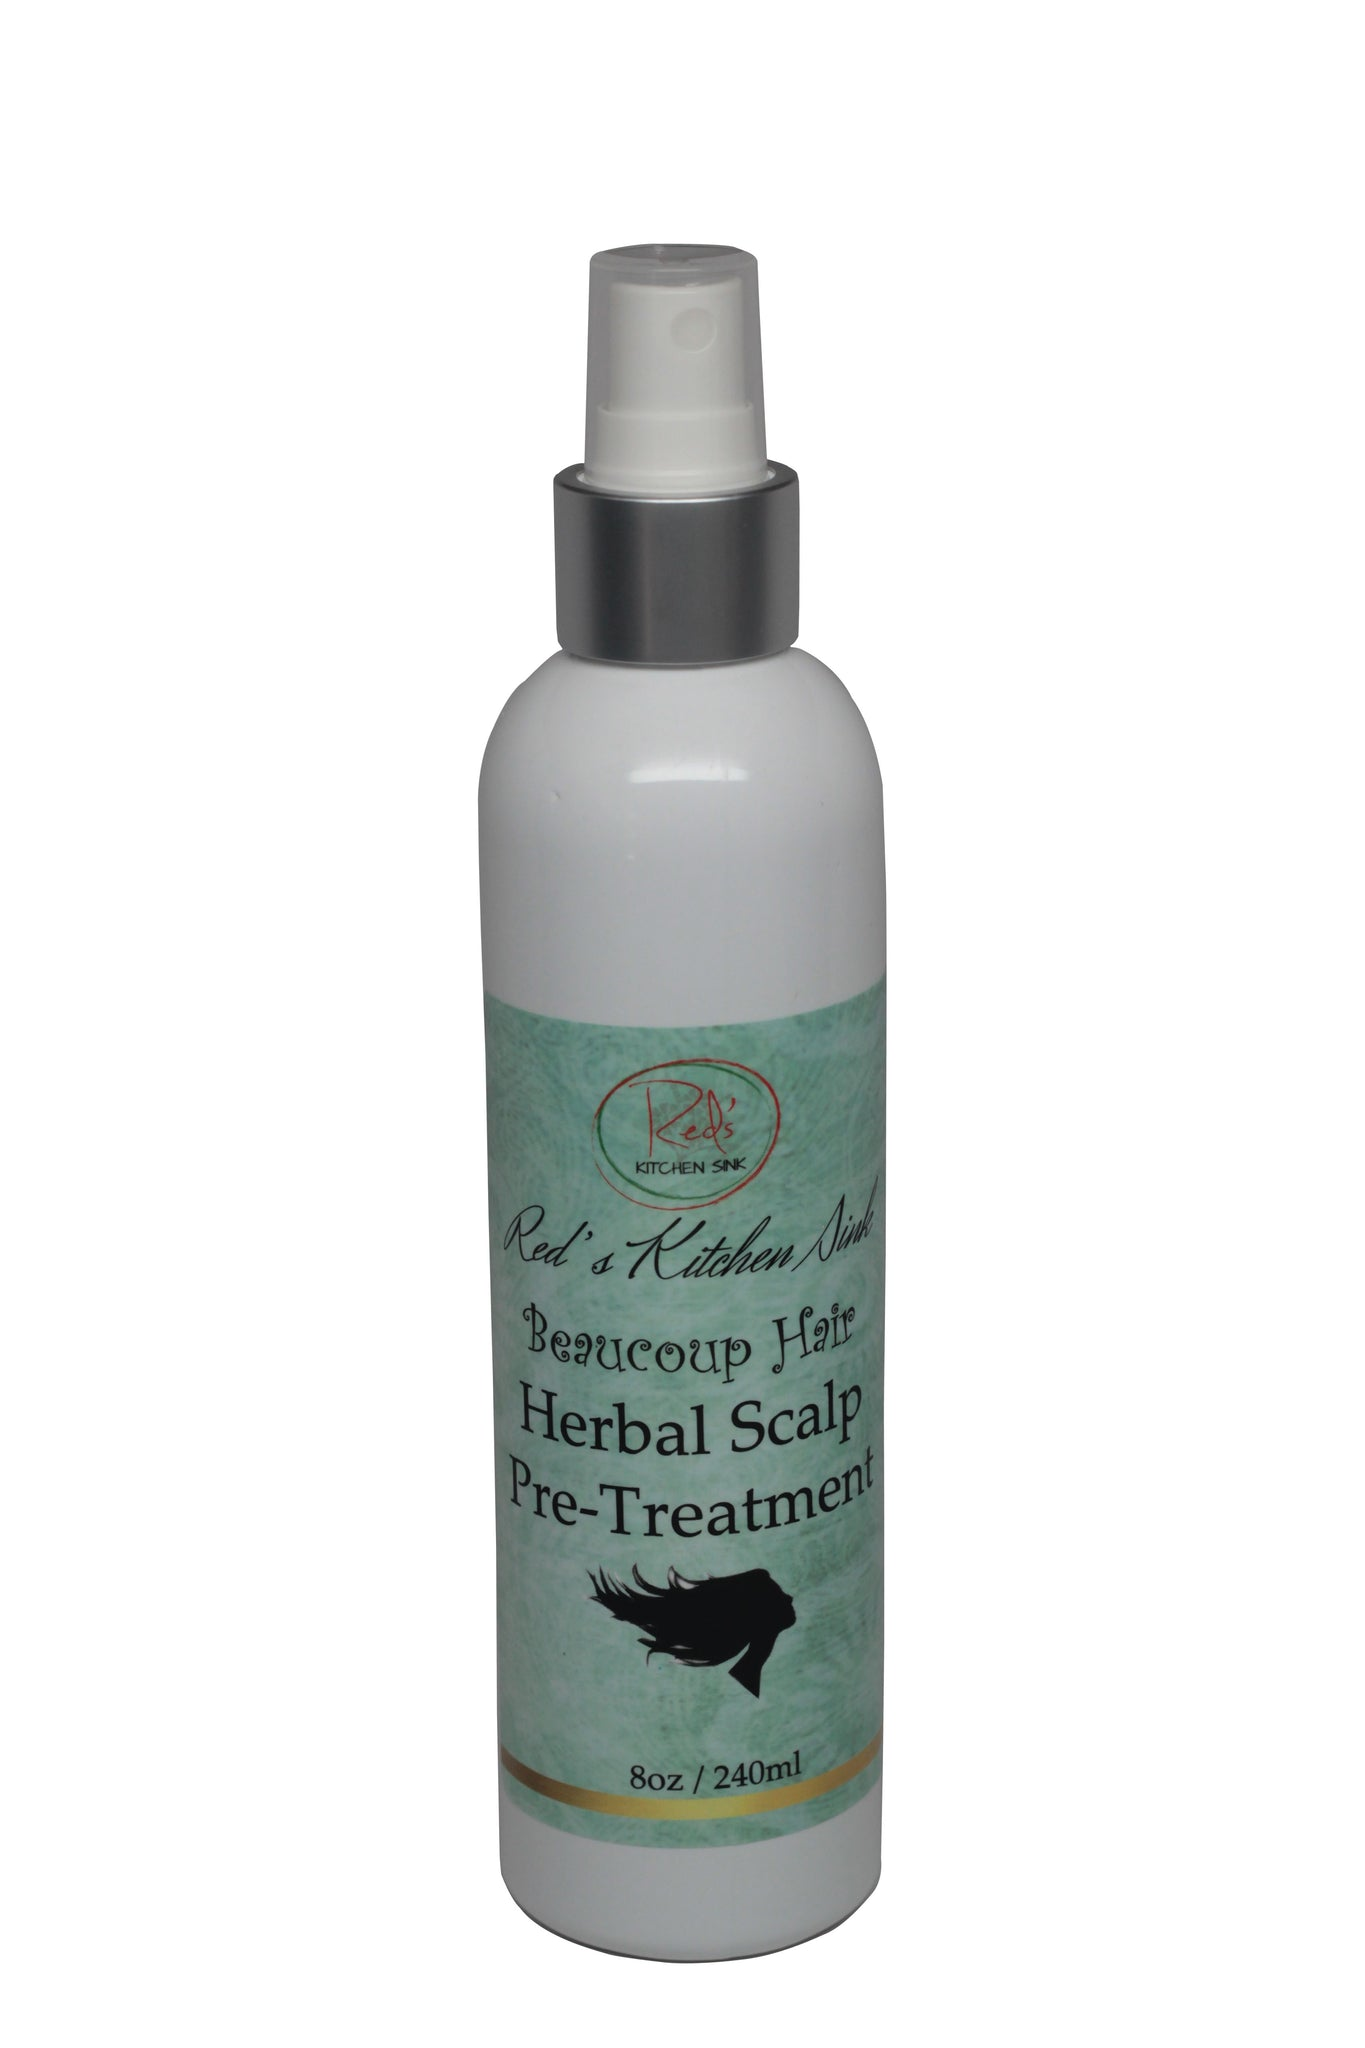 BEAUCOUP HAIR HERBAL SCALP PRE-TREATMENT- FOLLICLE CLEANSER - Red's Kitchen Sink